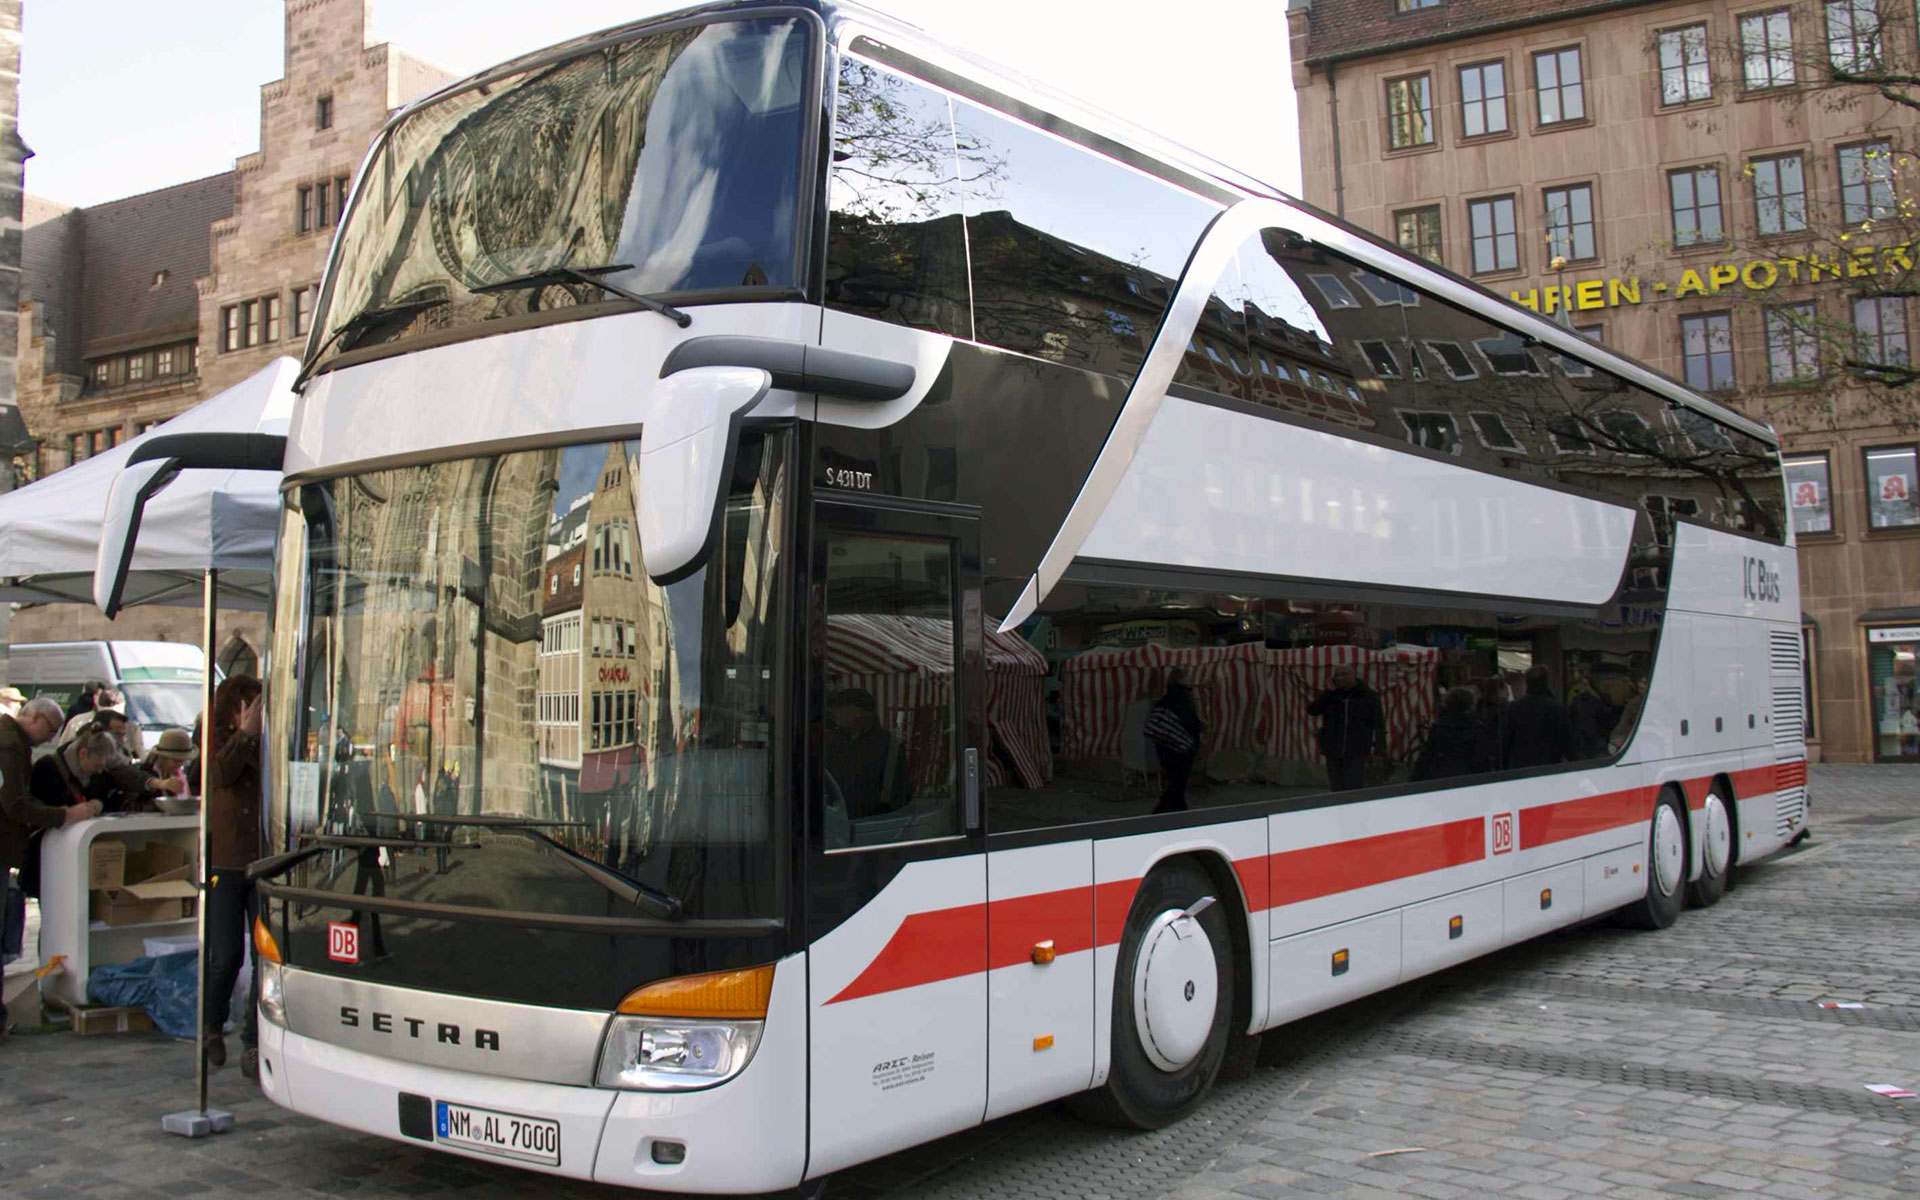 A Deutsche Bahn IC Bus service on the Nürnberg-Mannheim route, Germany (image by Mef.ellingen).